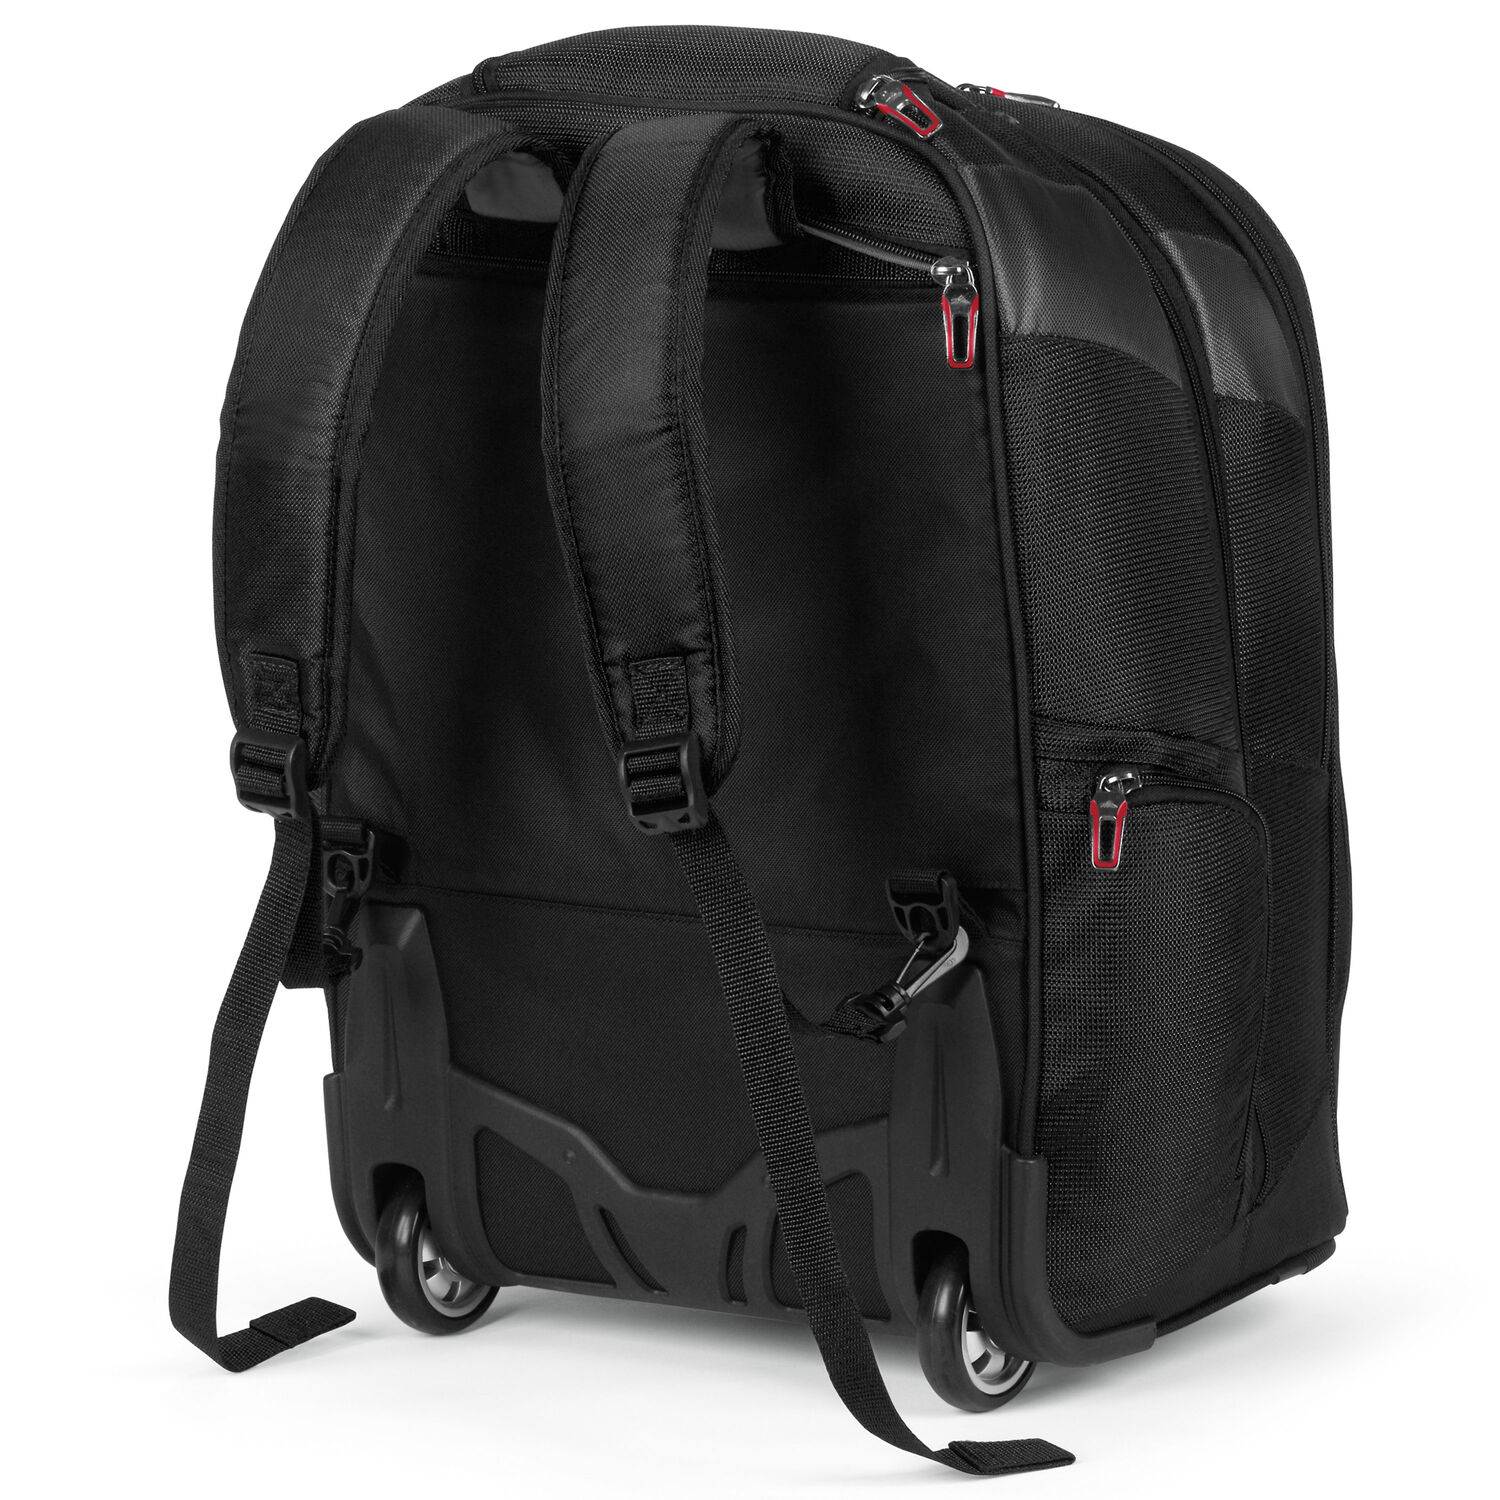 High Sierra At7 Wheeled Computer Backpack In The Color Black